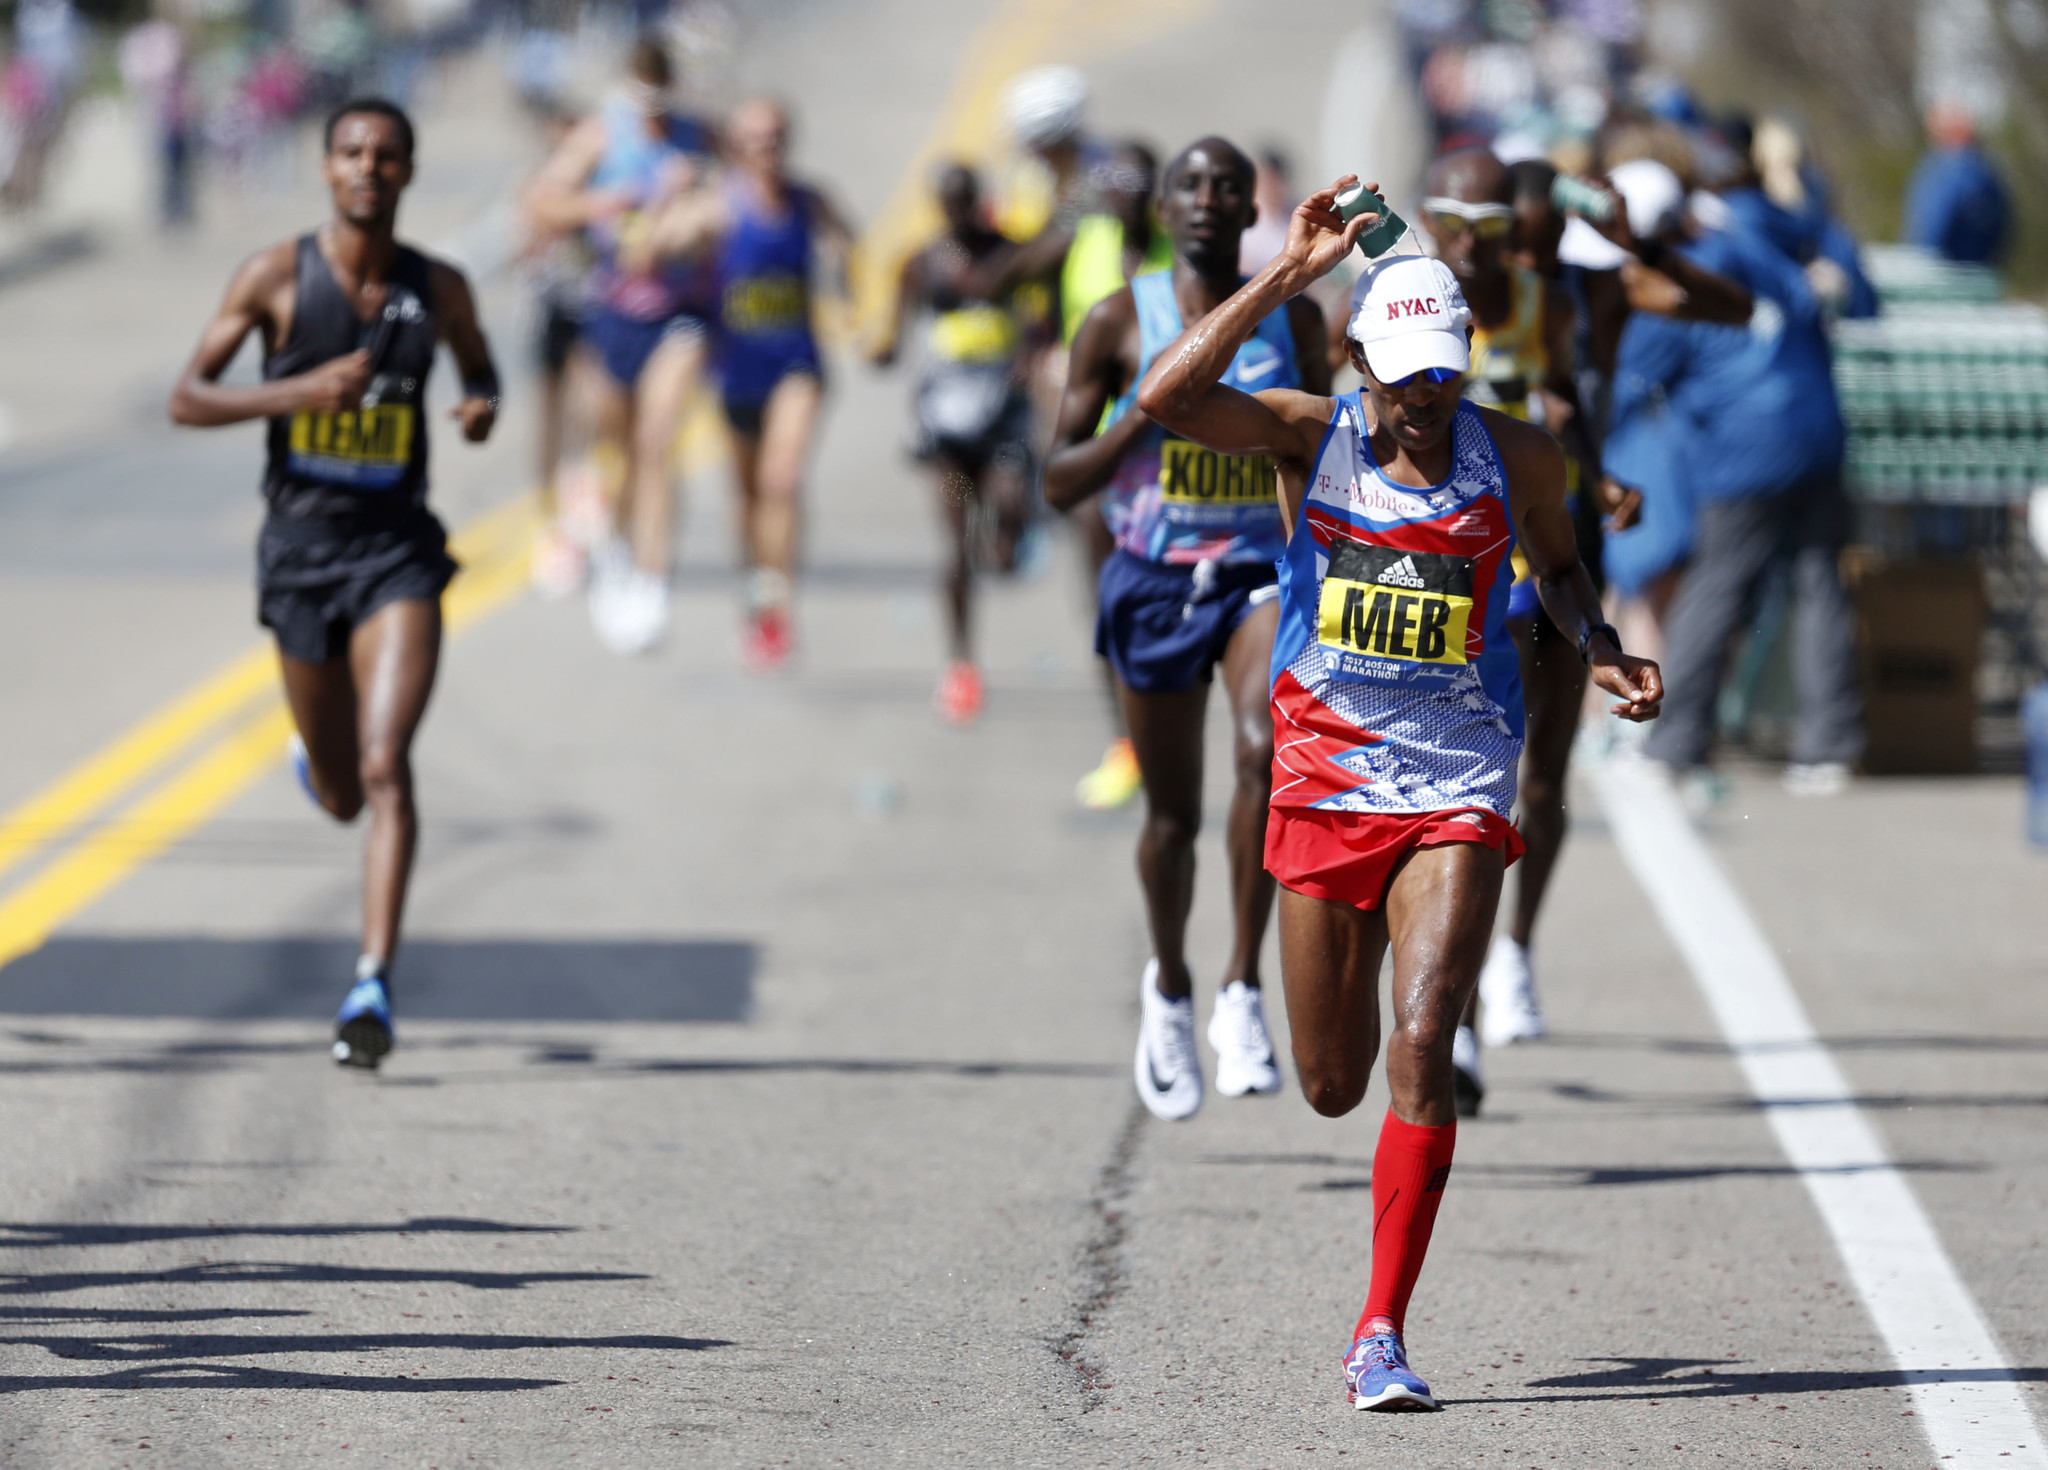 Olympian Meb Keflezighi will participate in Tallahassee Half Marathon this weekend